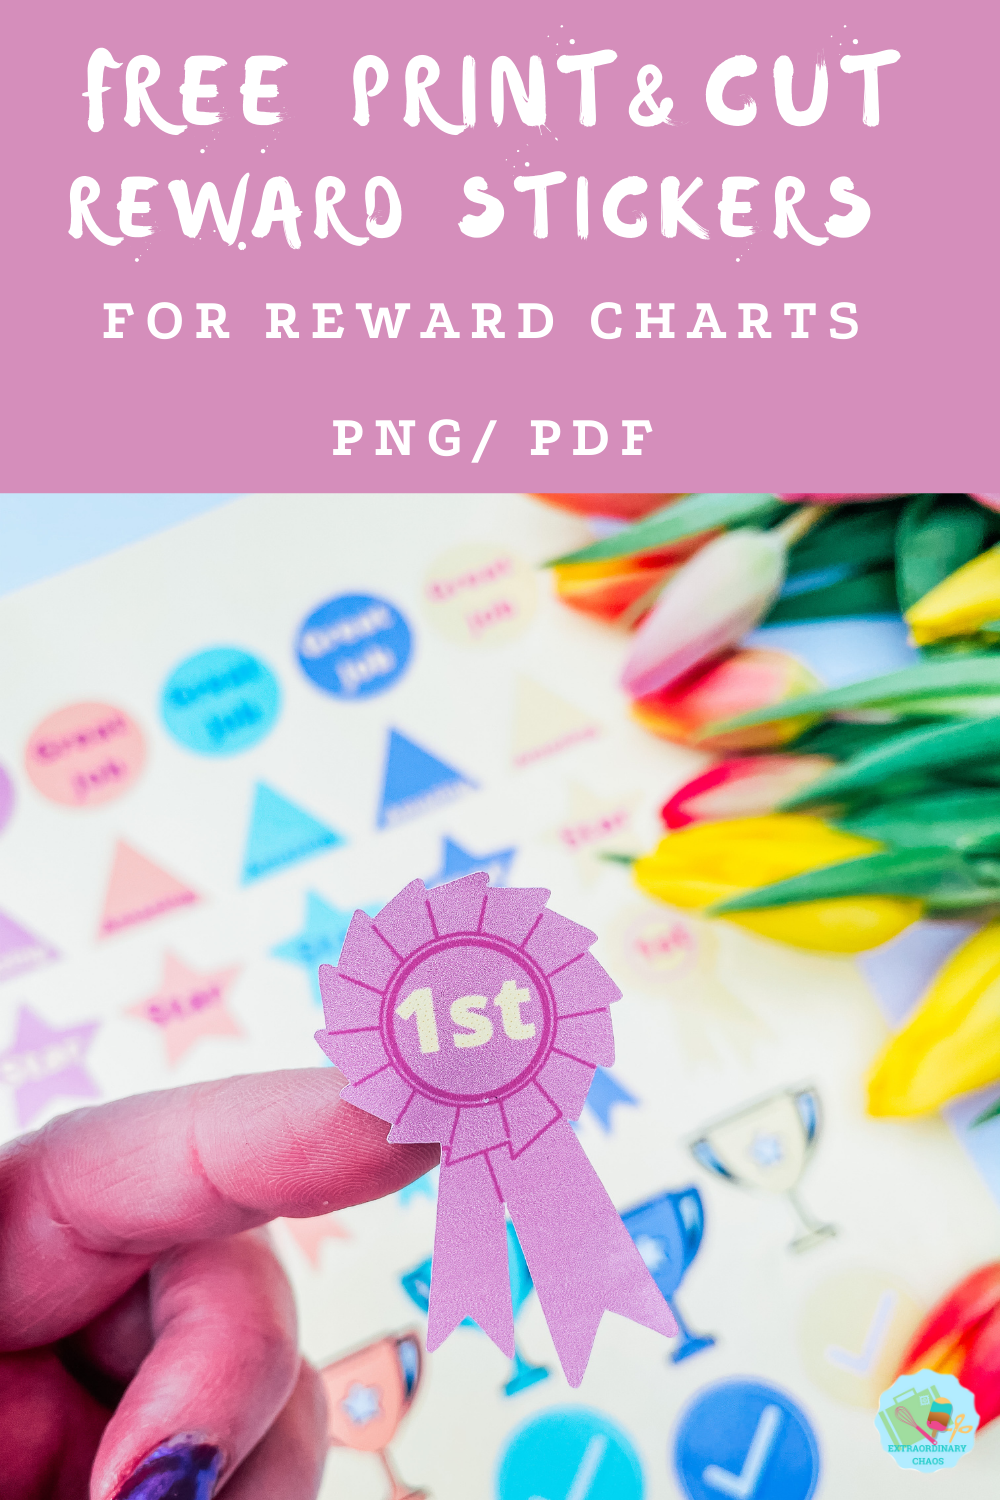 Free printable reward stickers for reward charts, home school  and crafting with kids